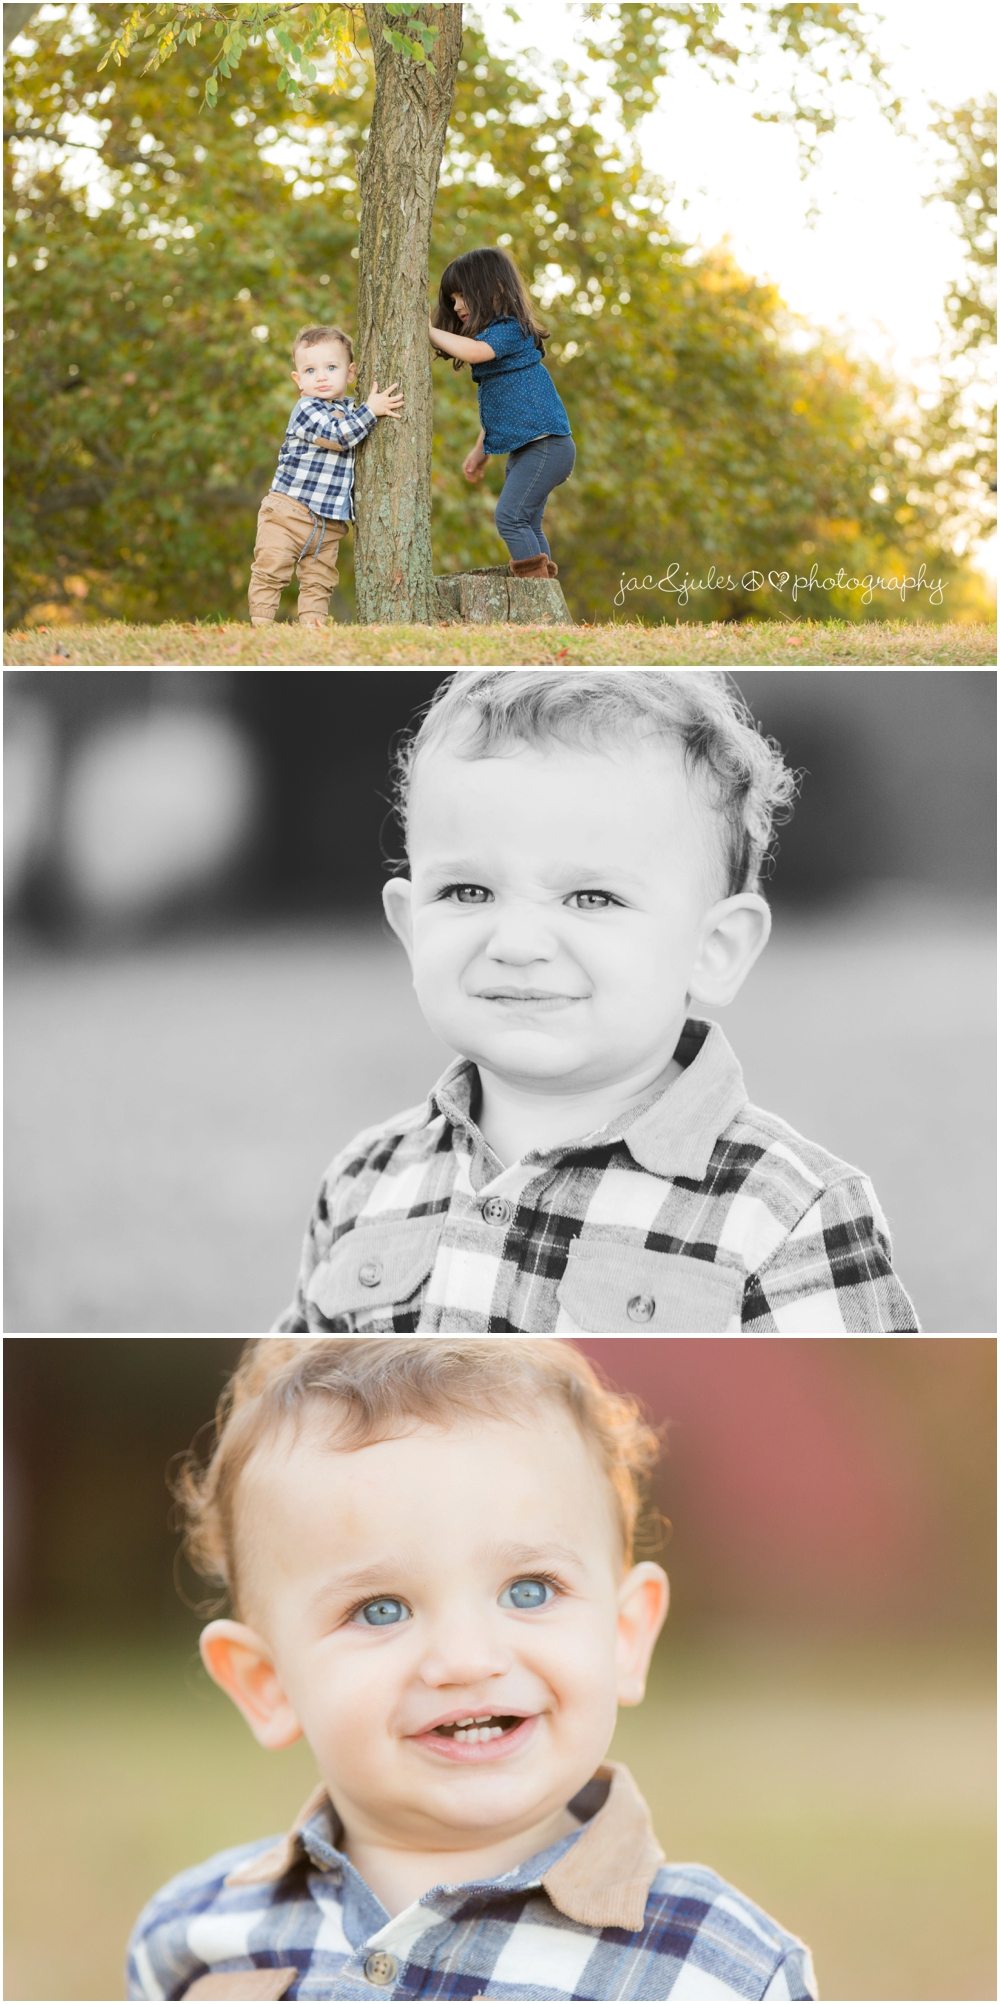 jacnjules photographs children at bayonet farm in holmdel nj